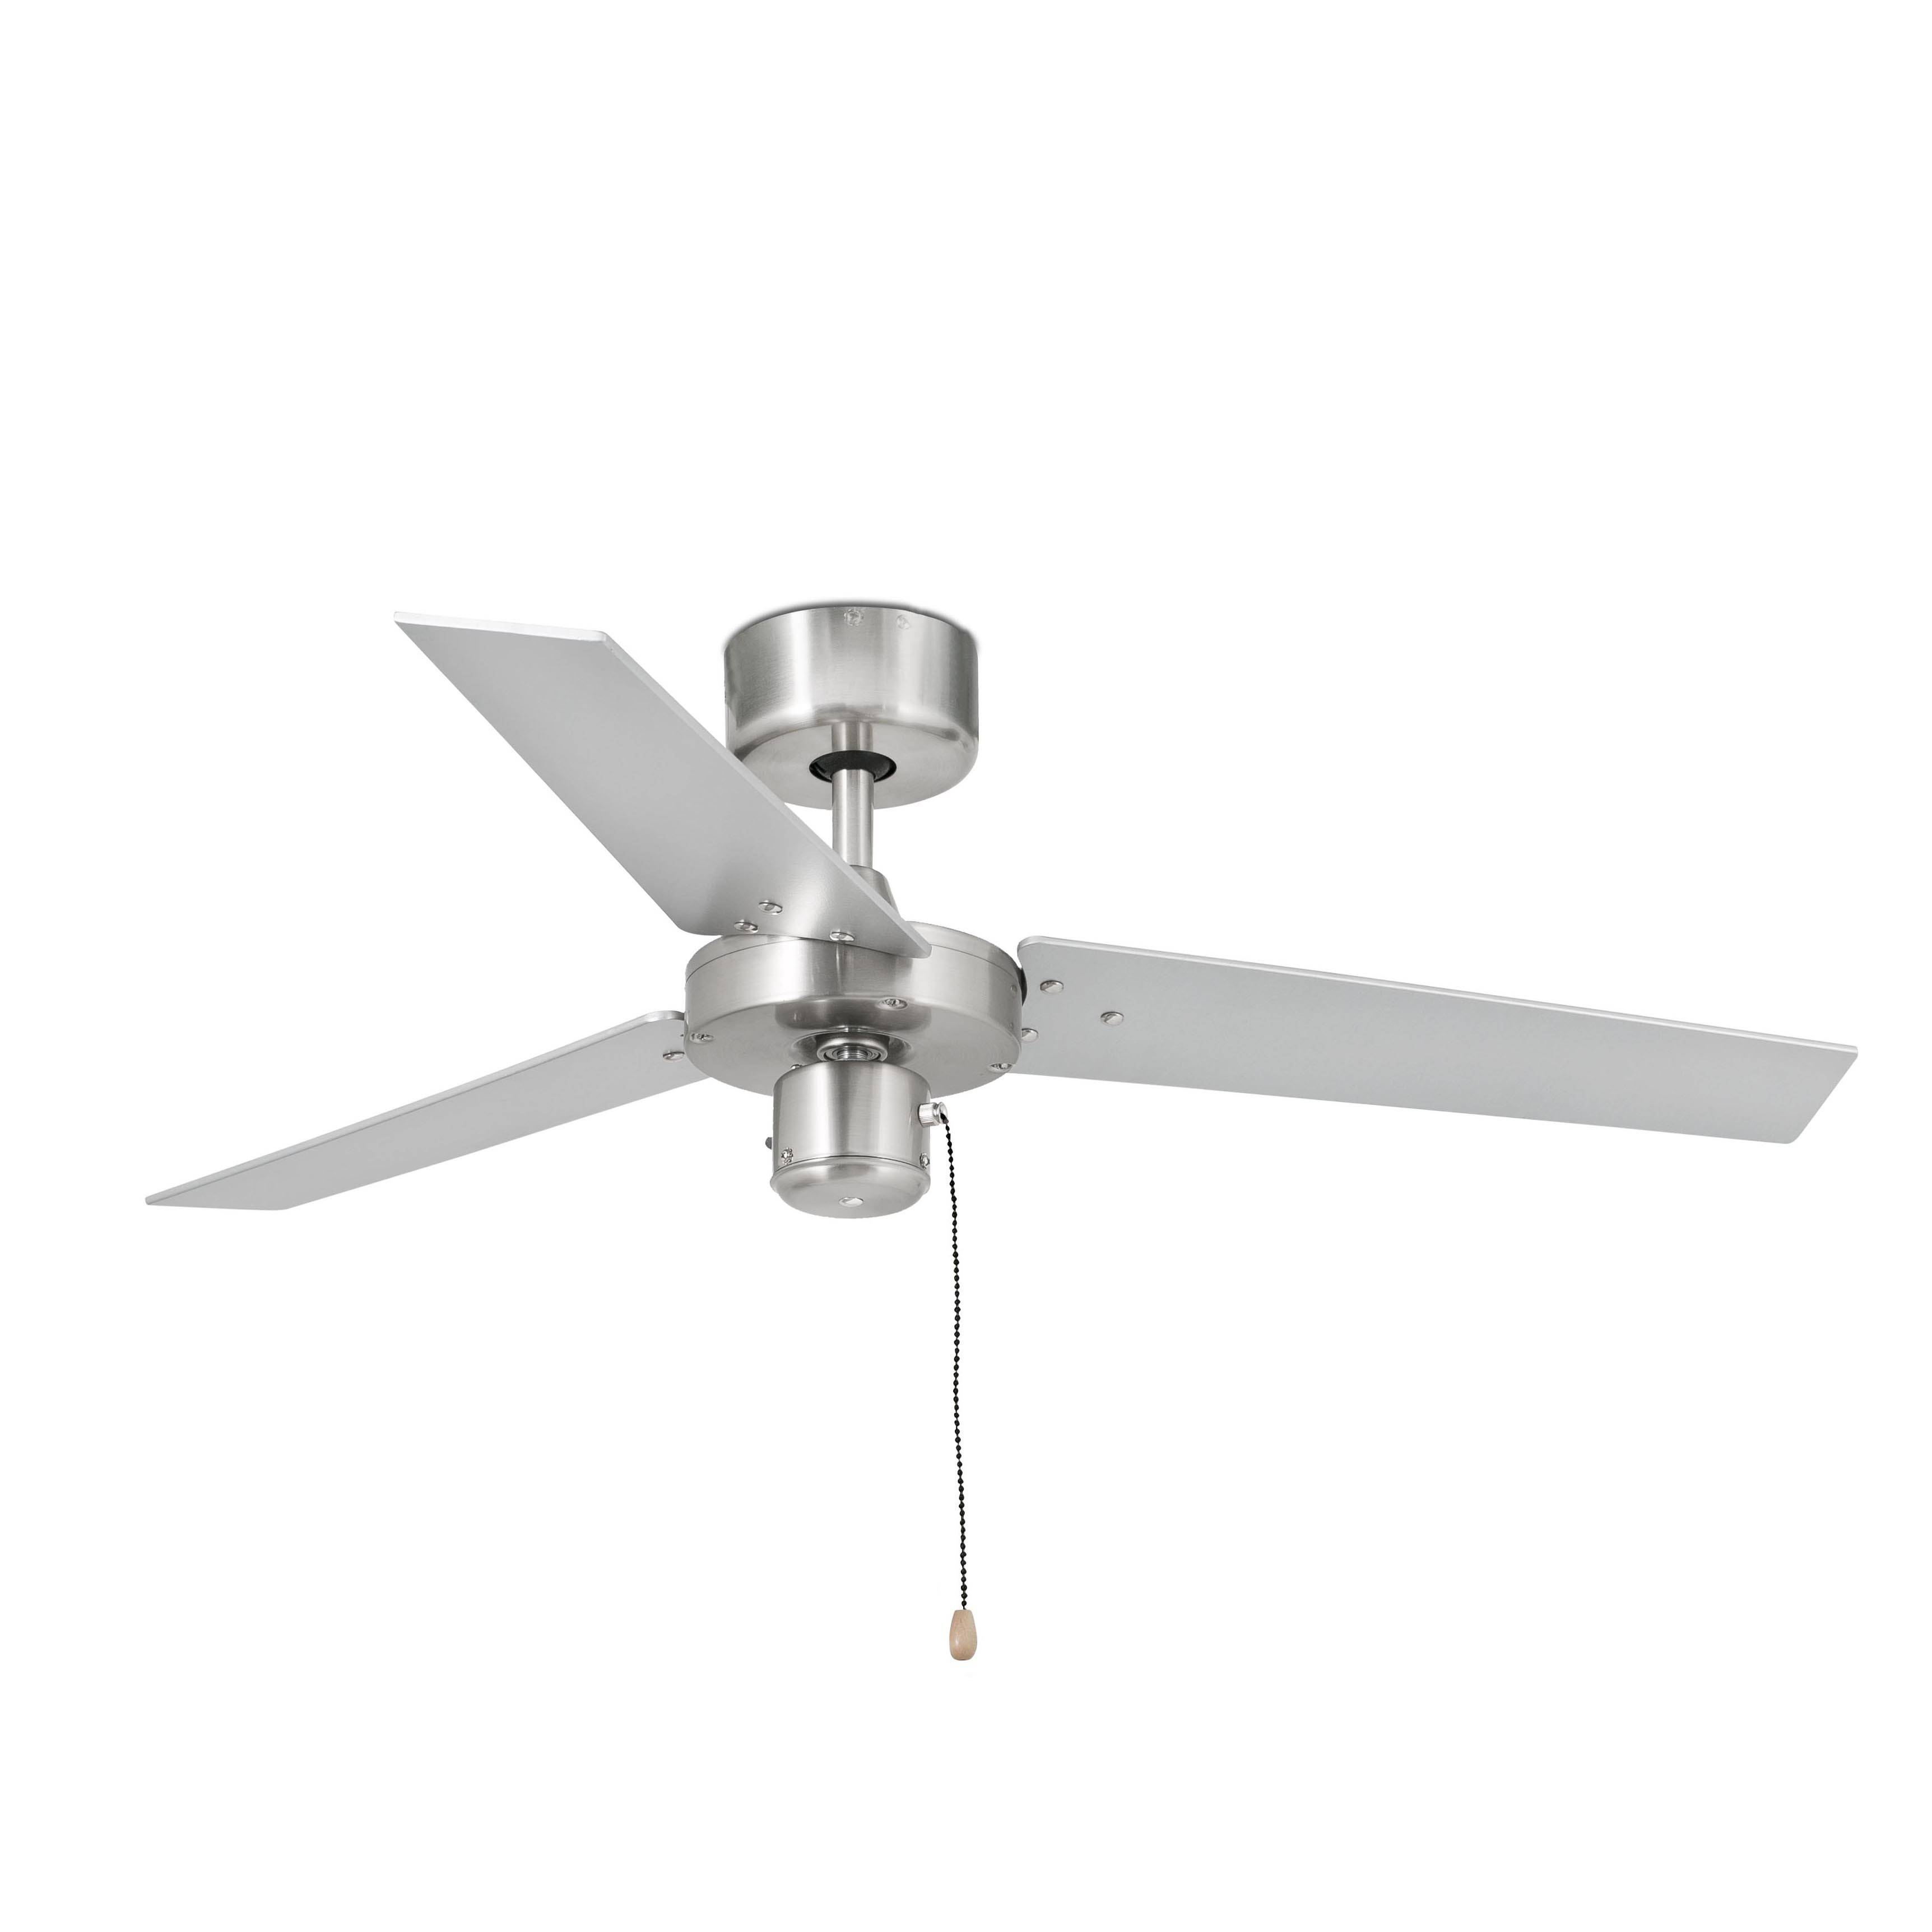 Small Aluminium Ceiling Fan Without Light Black Grey